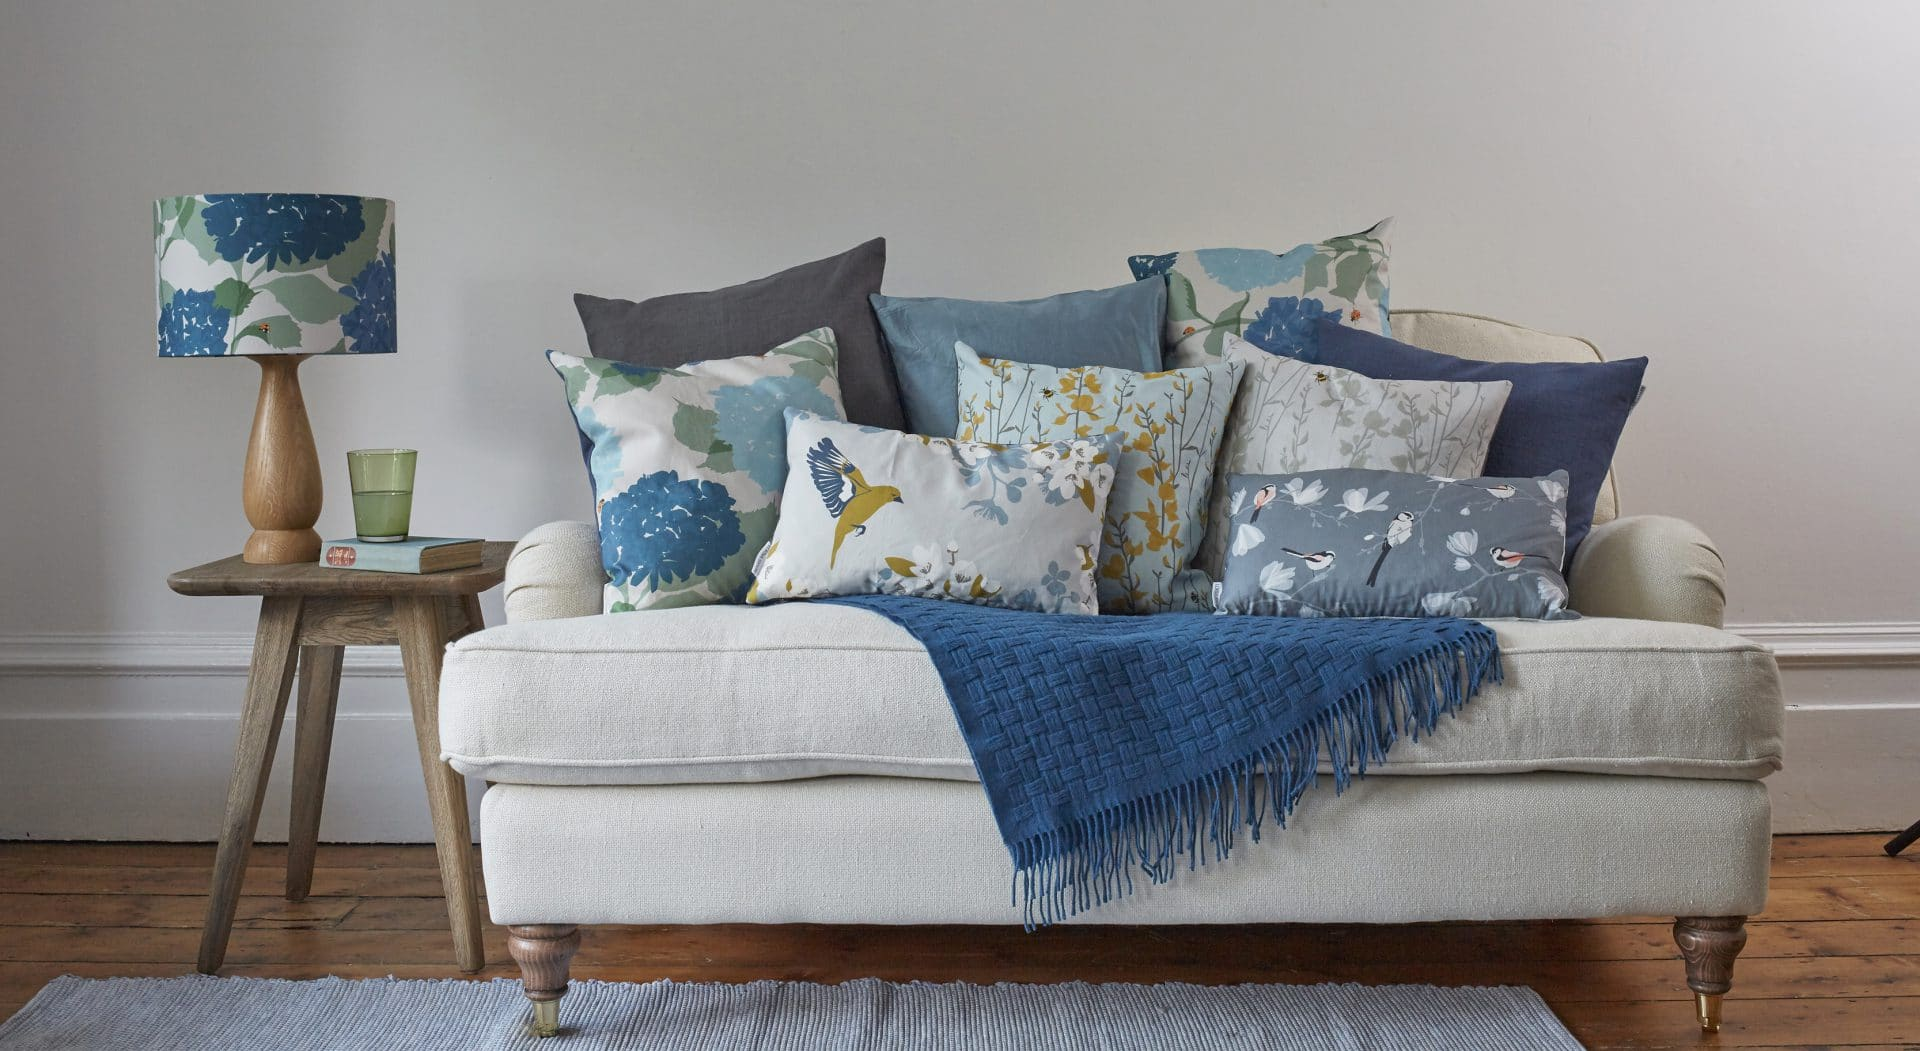 Lorna Syson's Bloom collection at Harrogate Home and Gift Festival